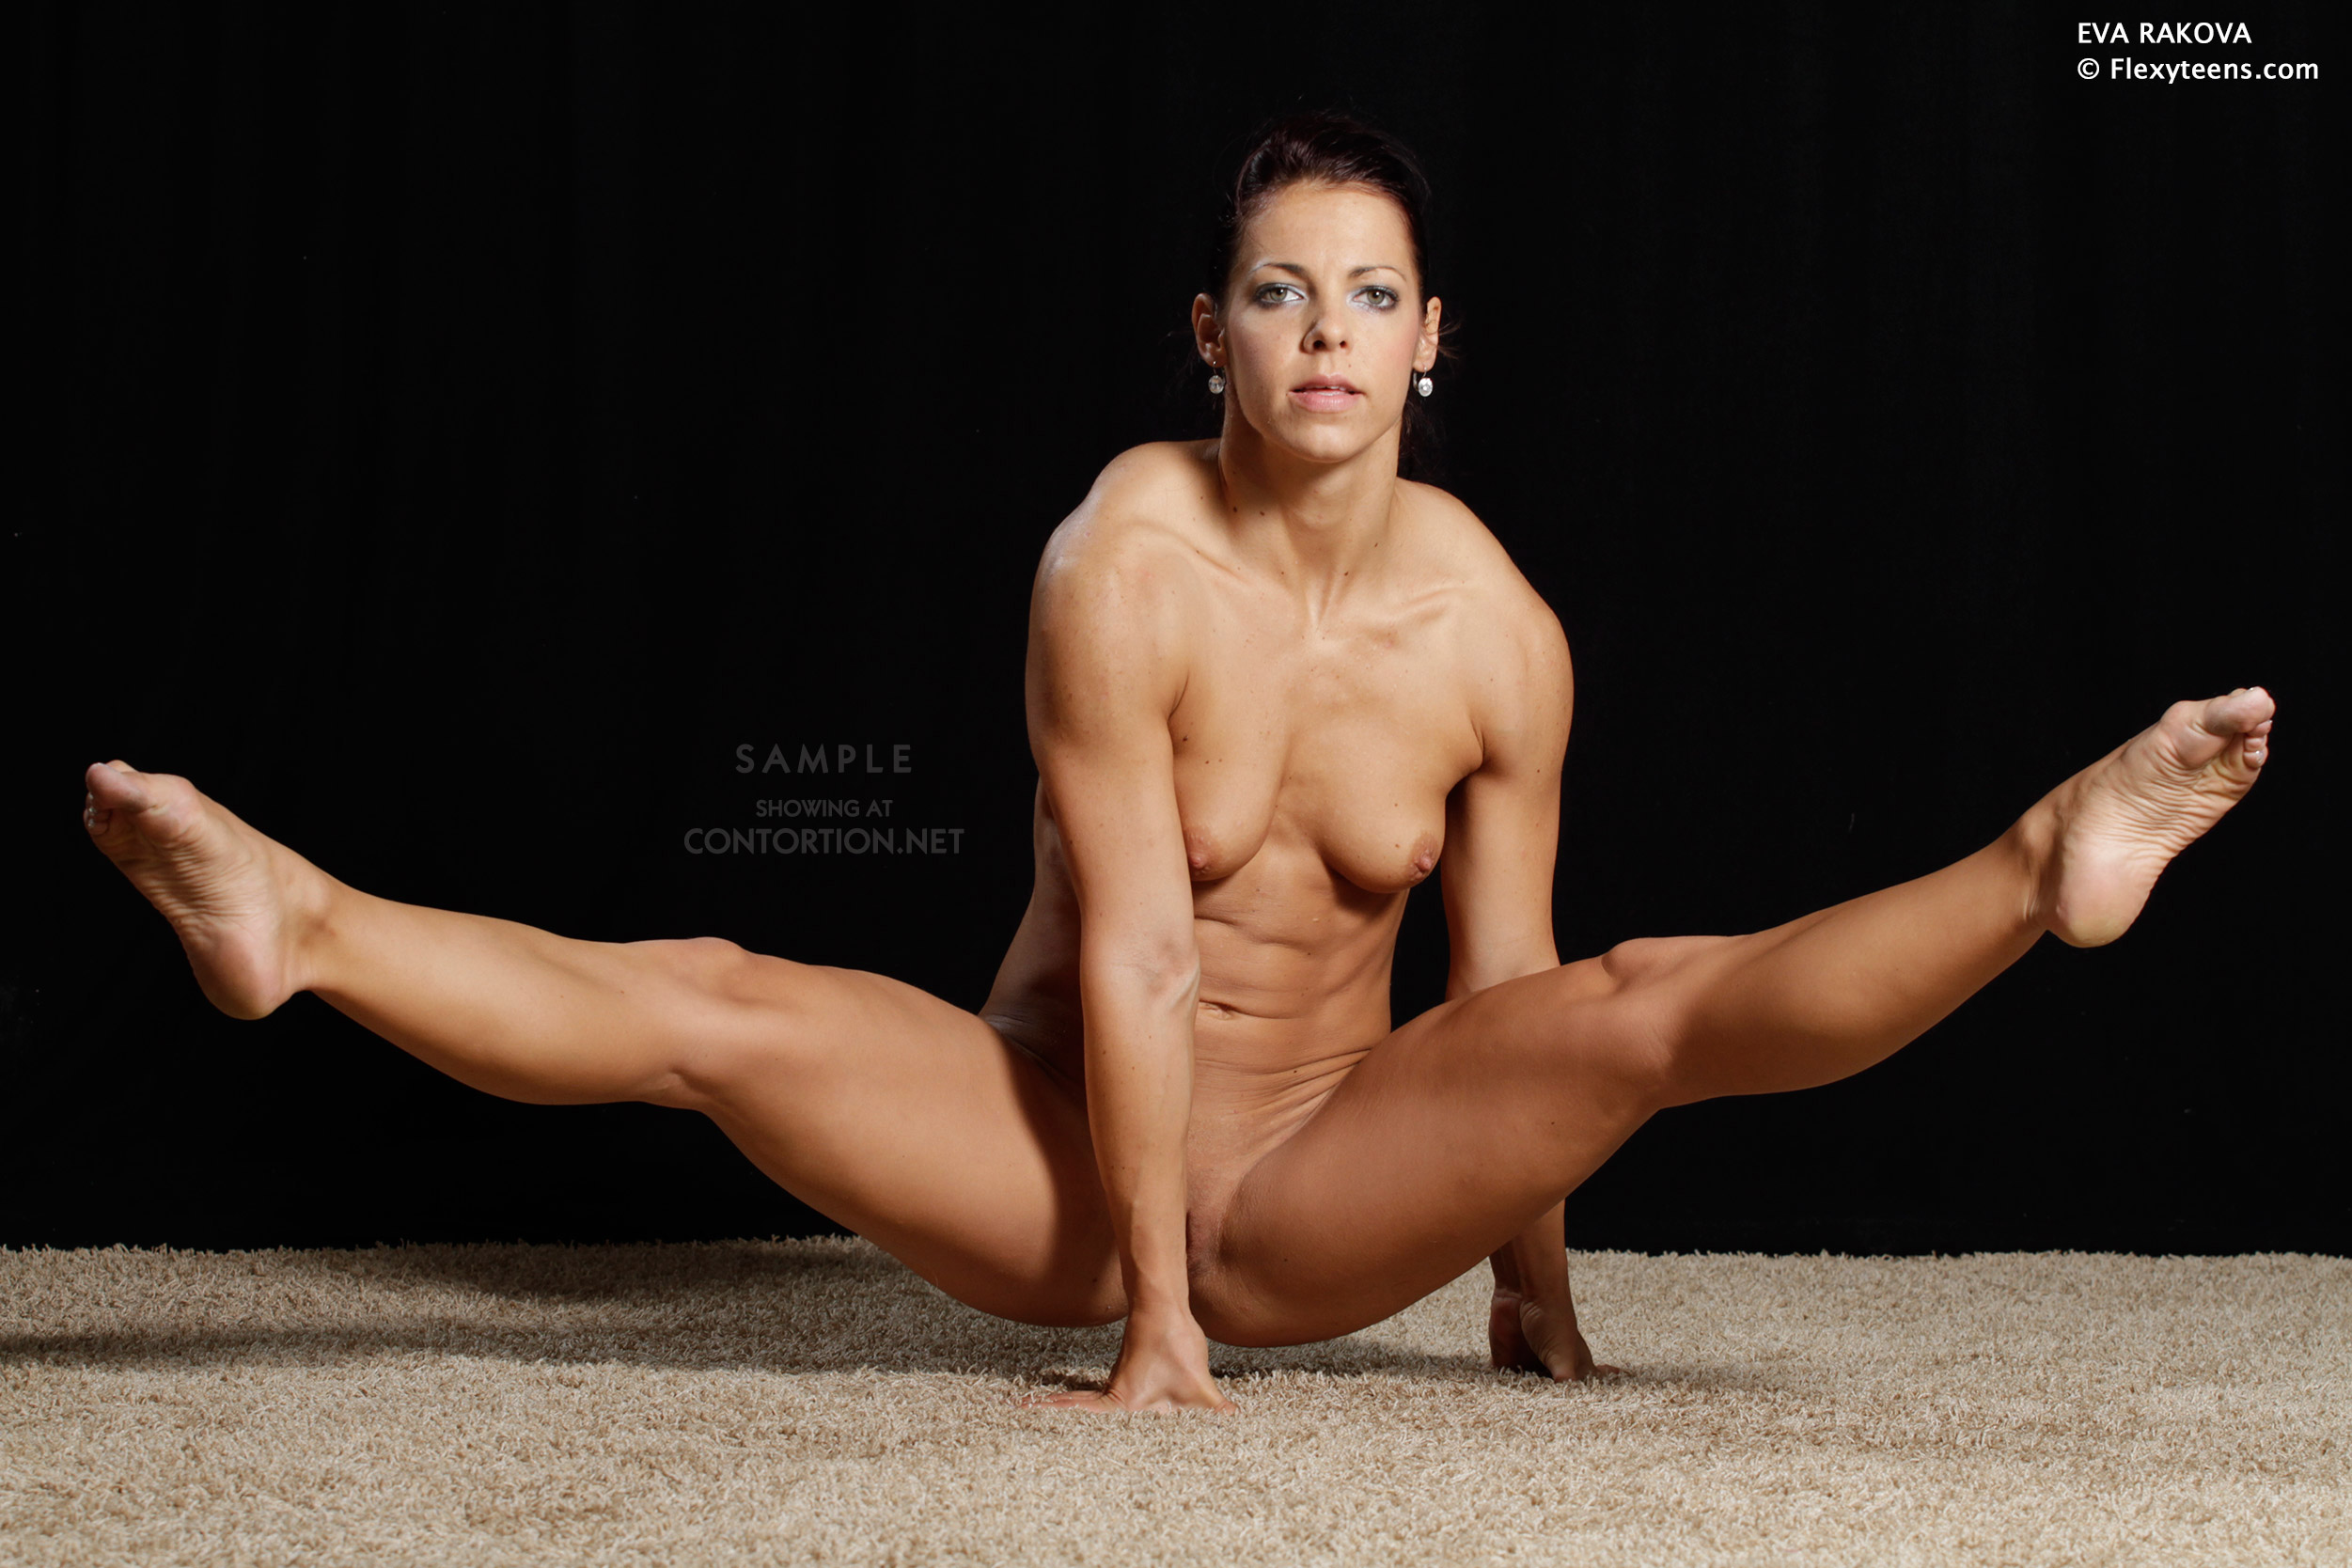 Tempting Naked athletes cannot be!